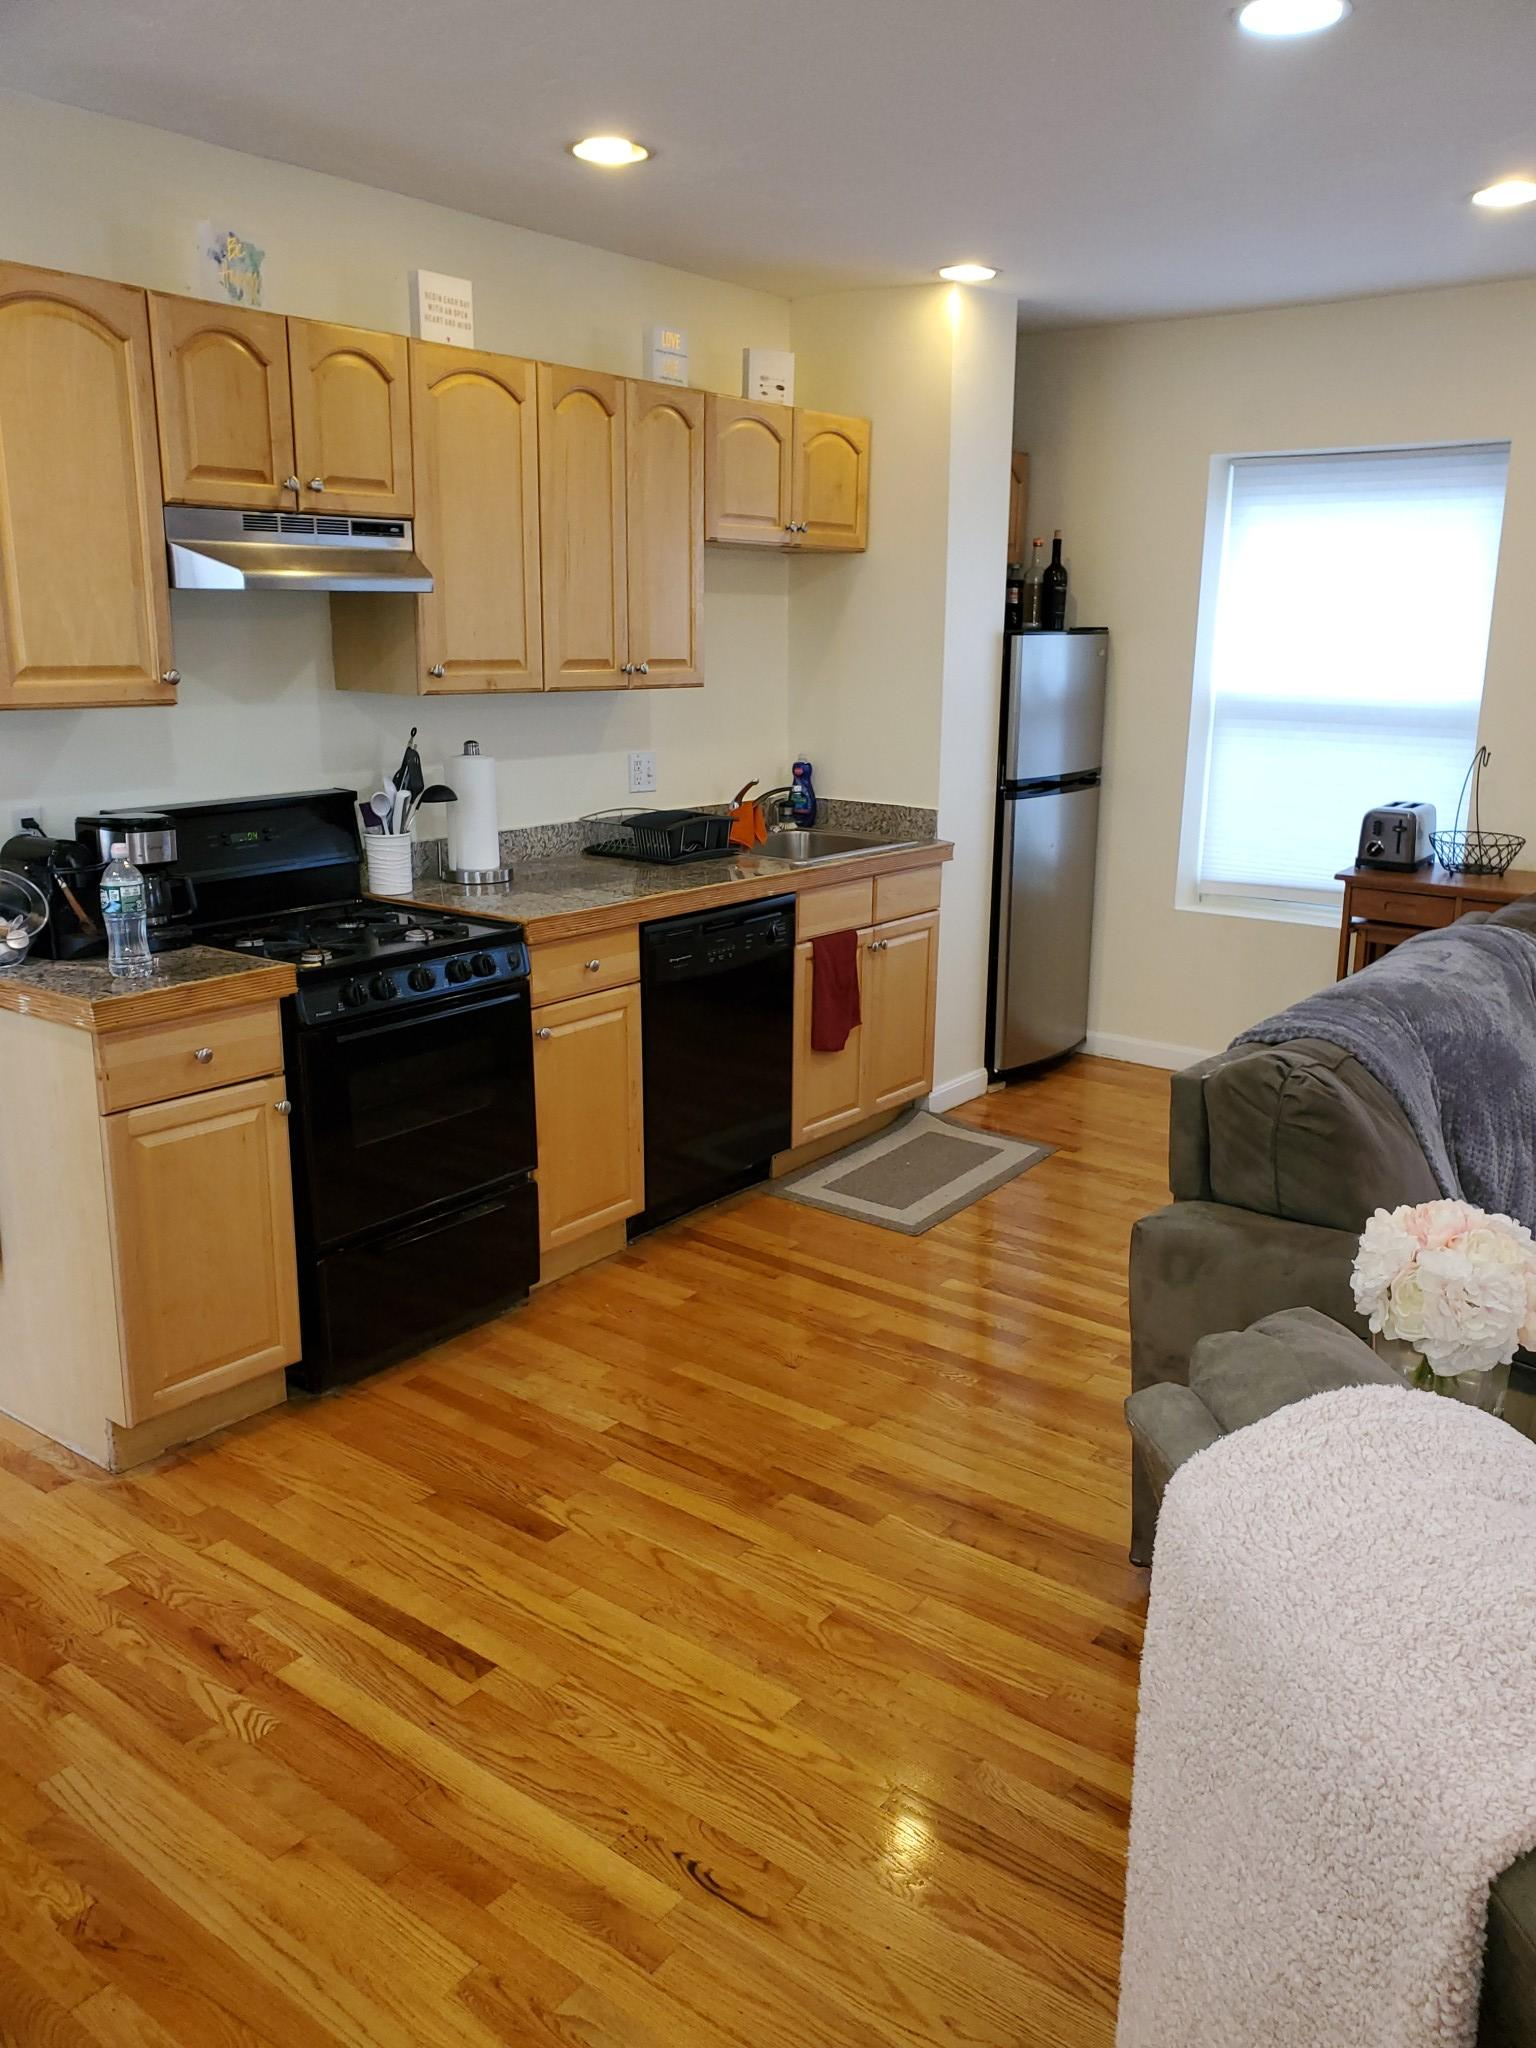 2 Beds, 1 Bath apartment in Boston, North End for $2,800